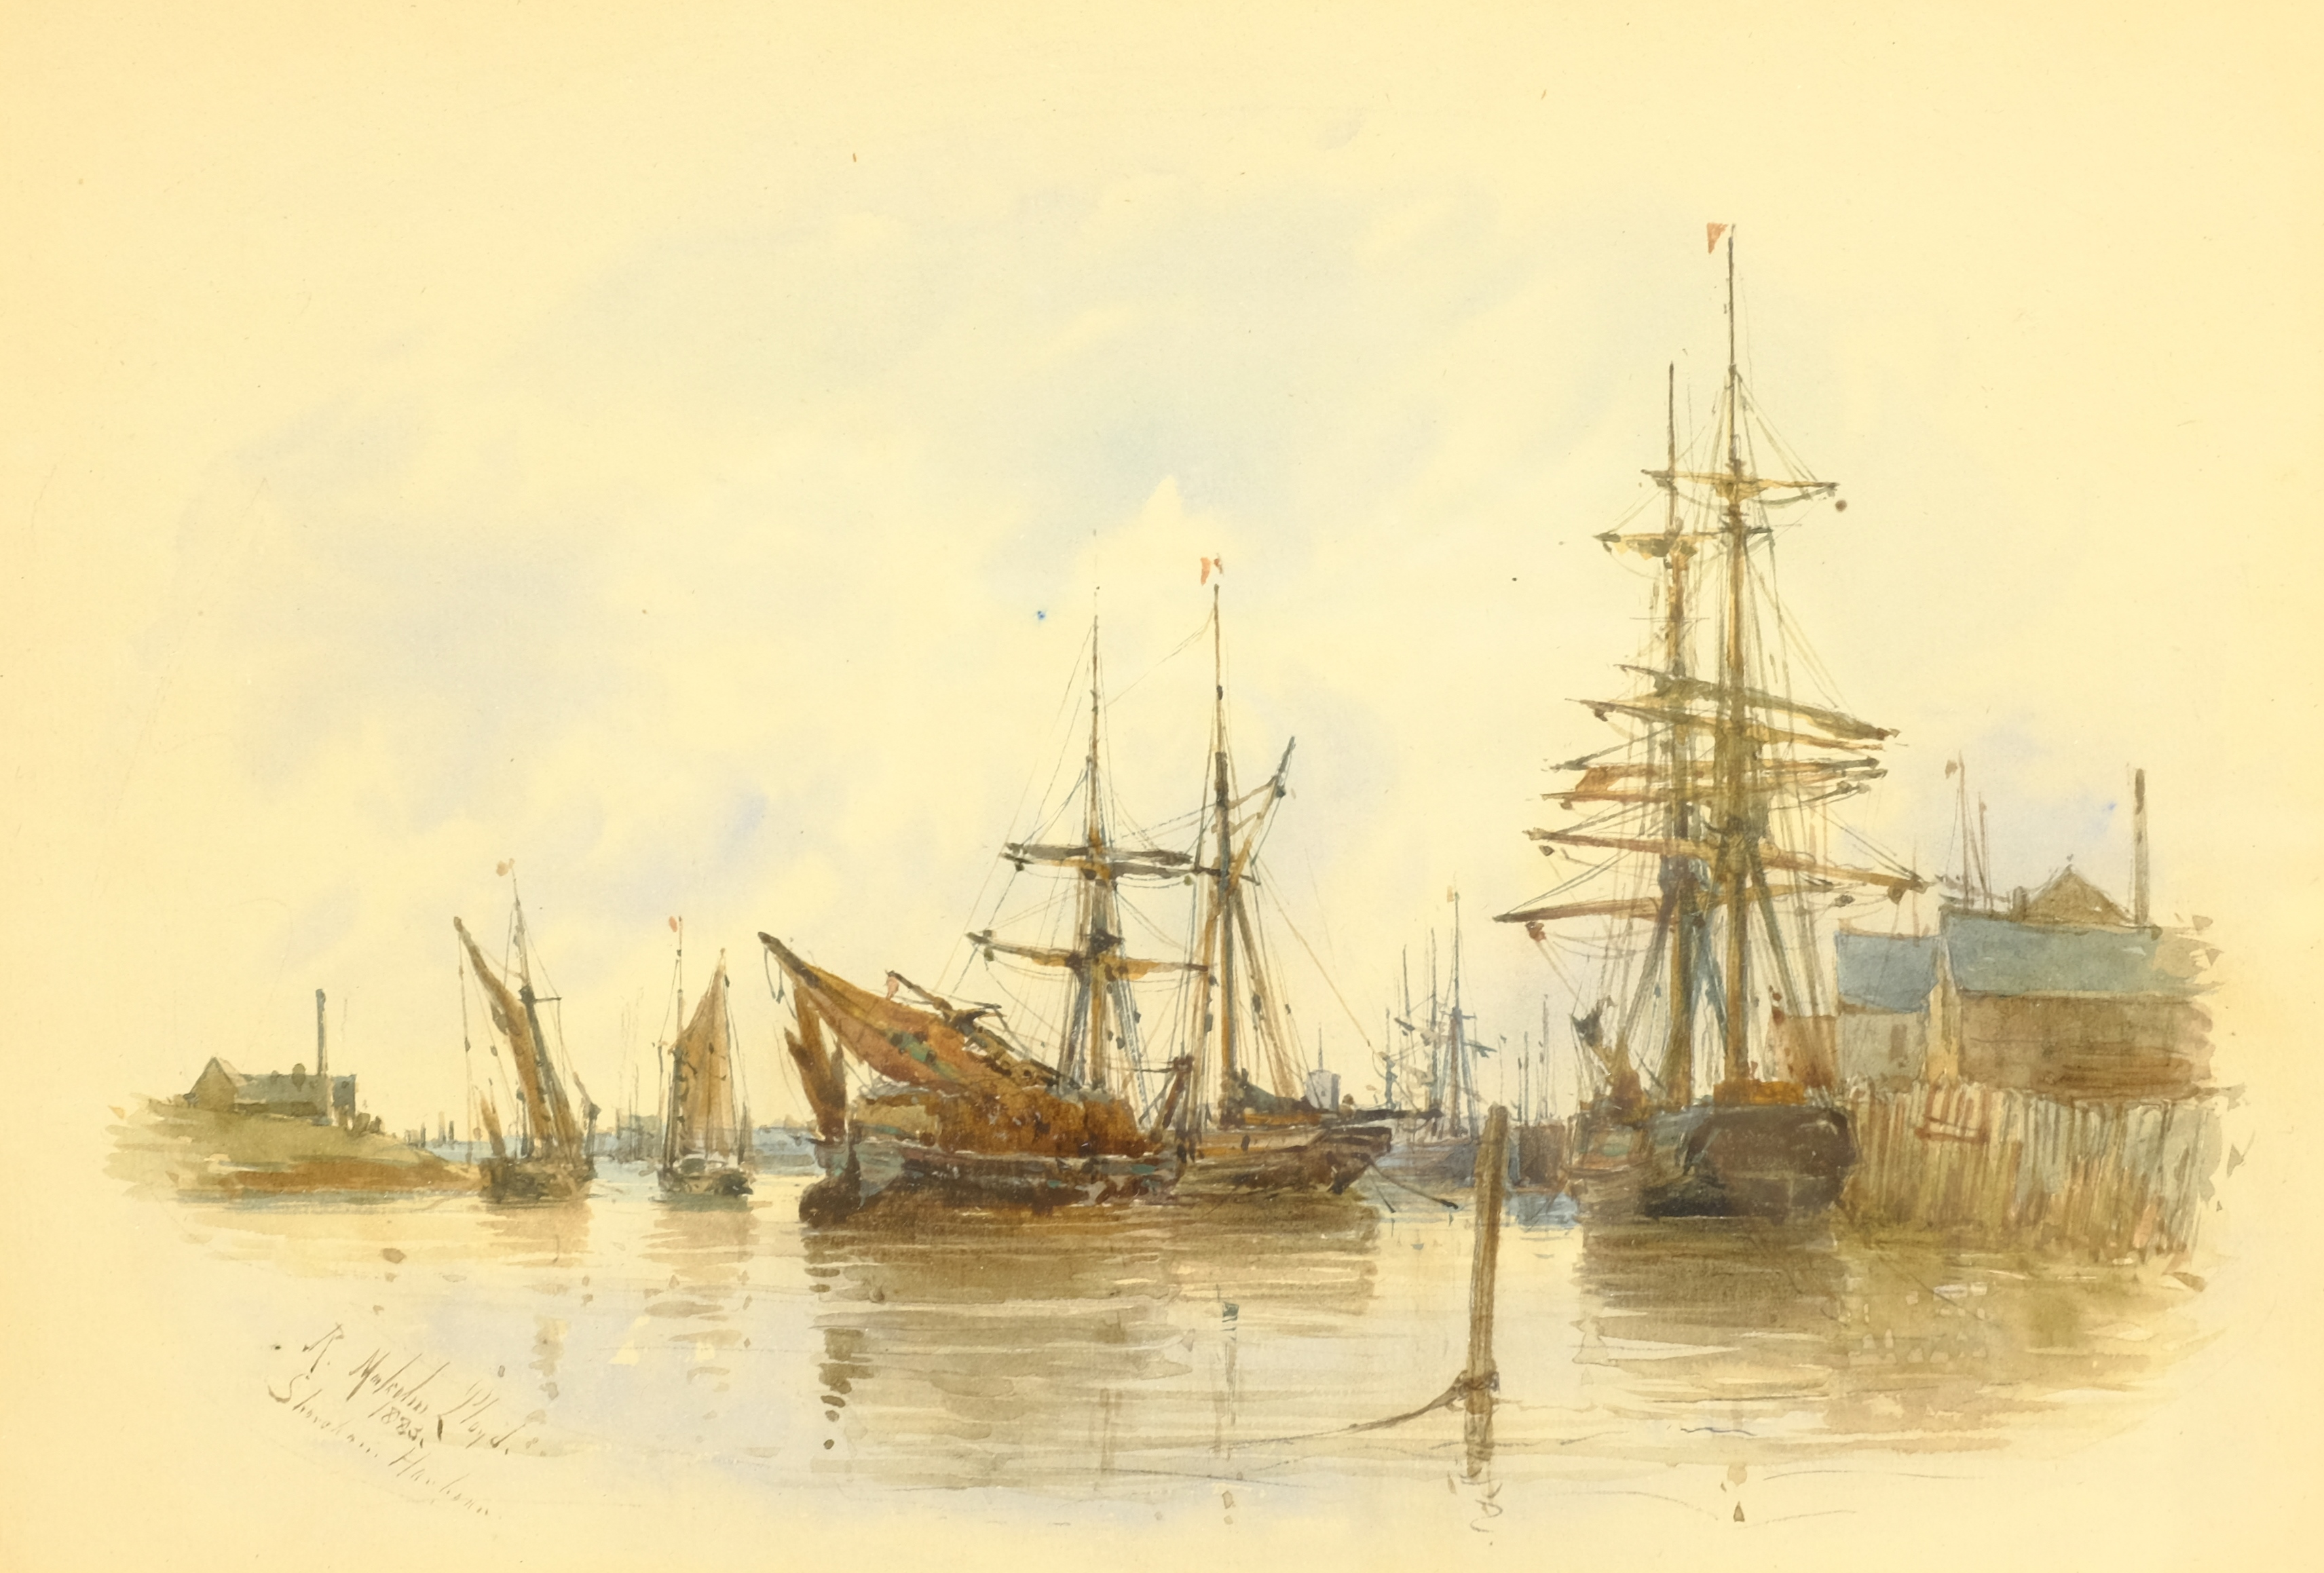 Robert Malcolm Lloyd (British 1859-1907): 'Shoreham Harbour', watercolour signed, titled and dated 1